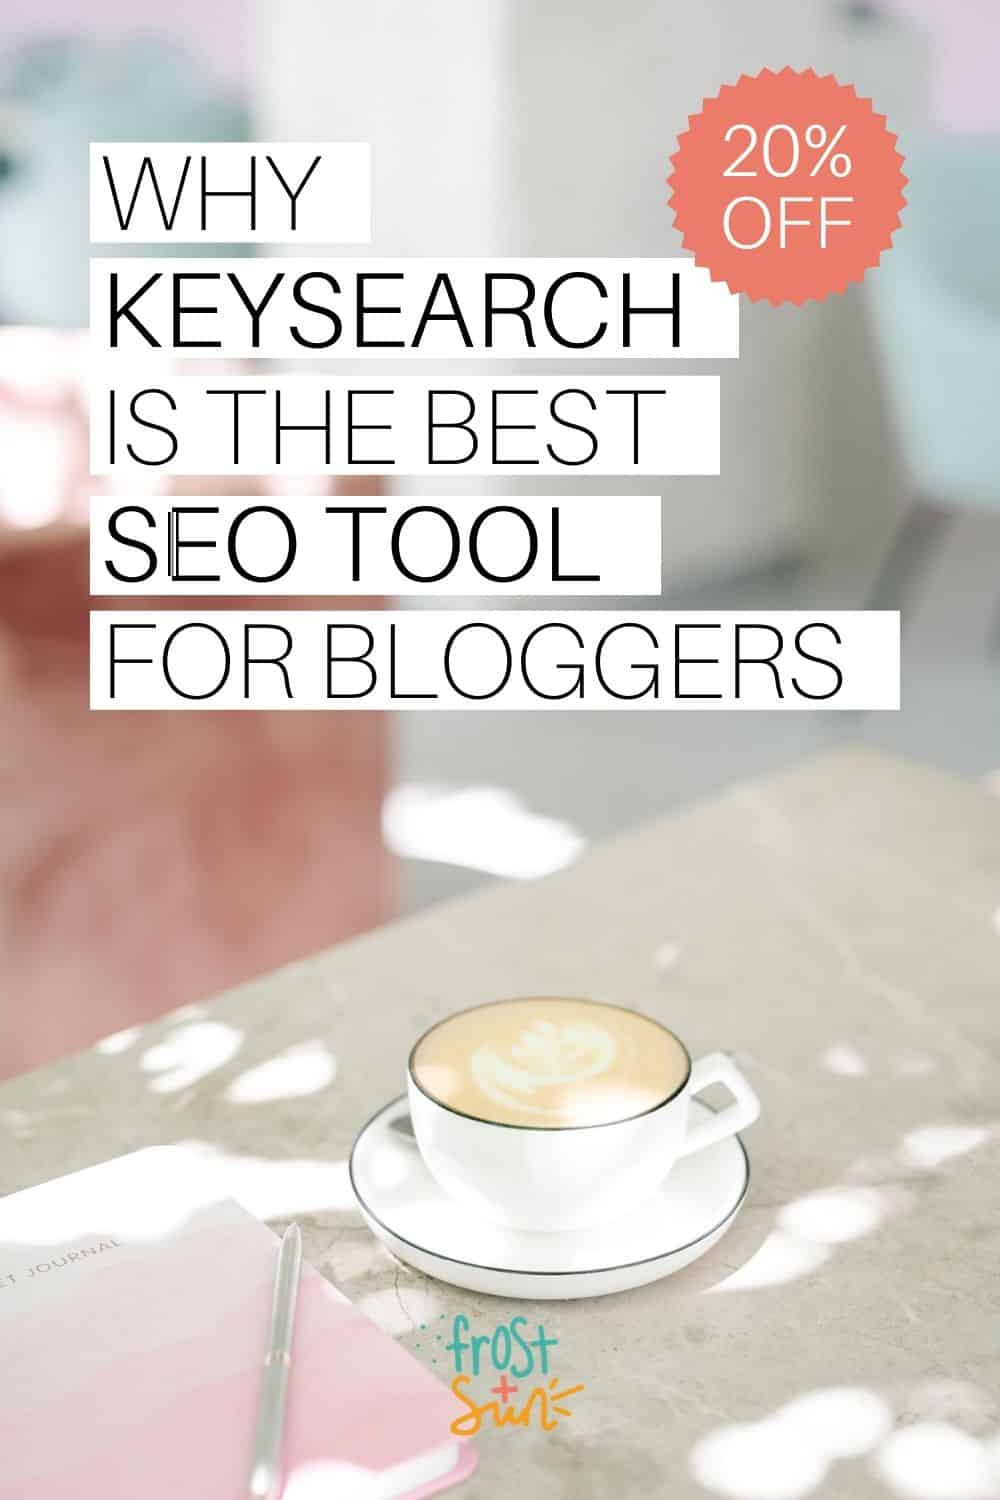 Keysearch Review: Is This SEO Tool Worth it?